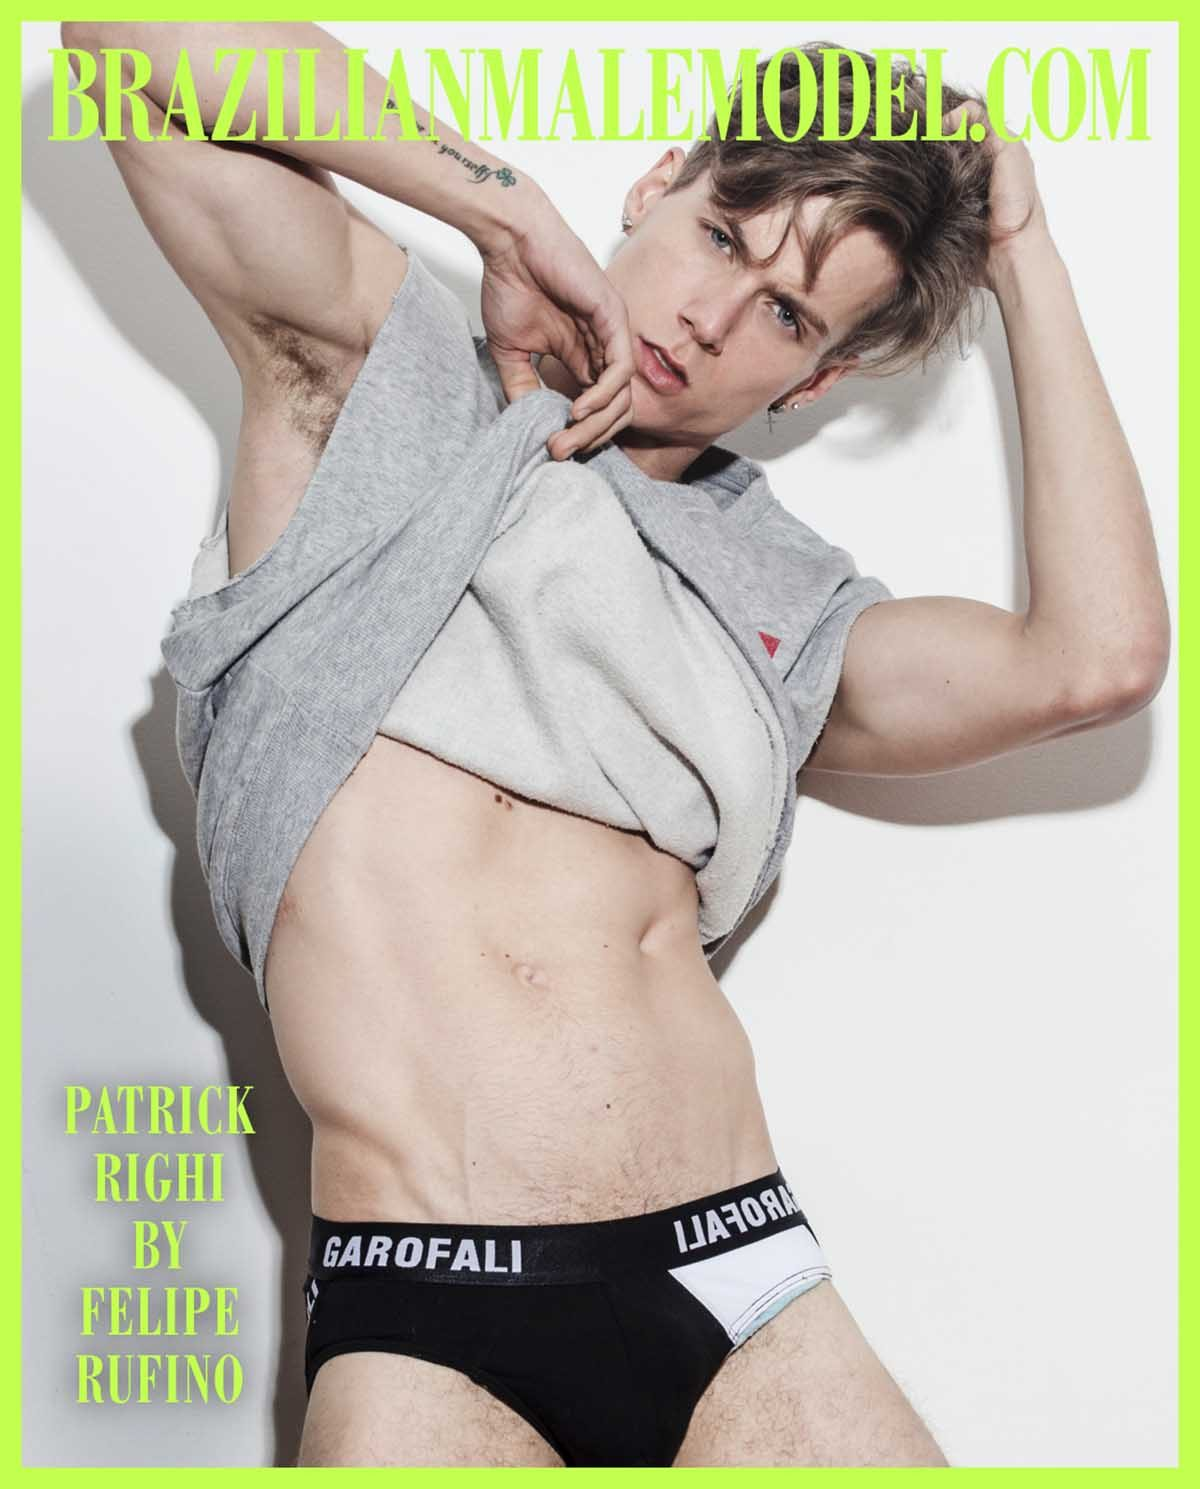 Patrick Righi by Felipe Rufino